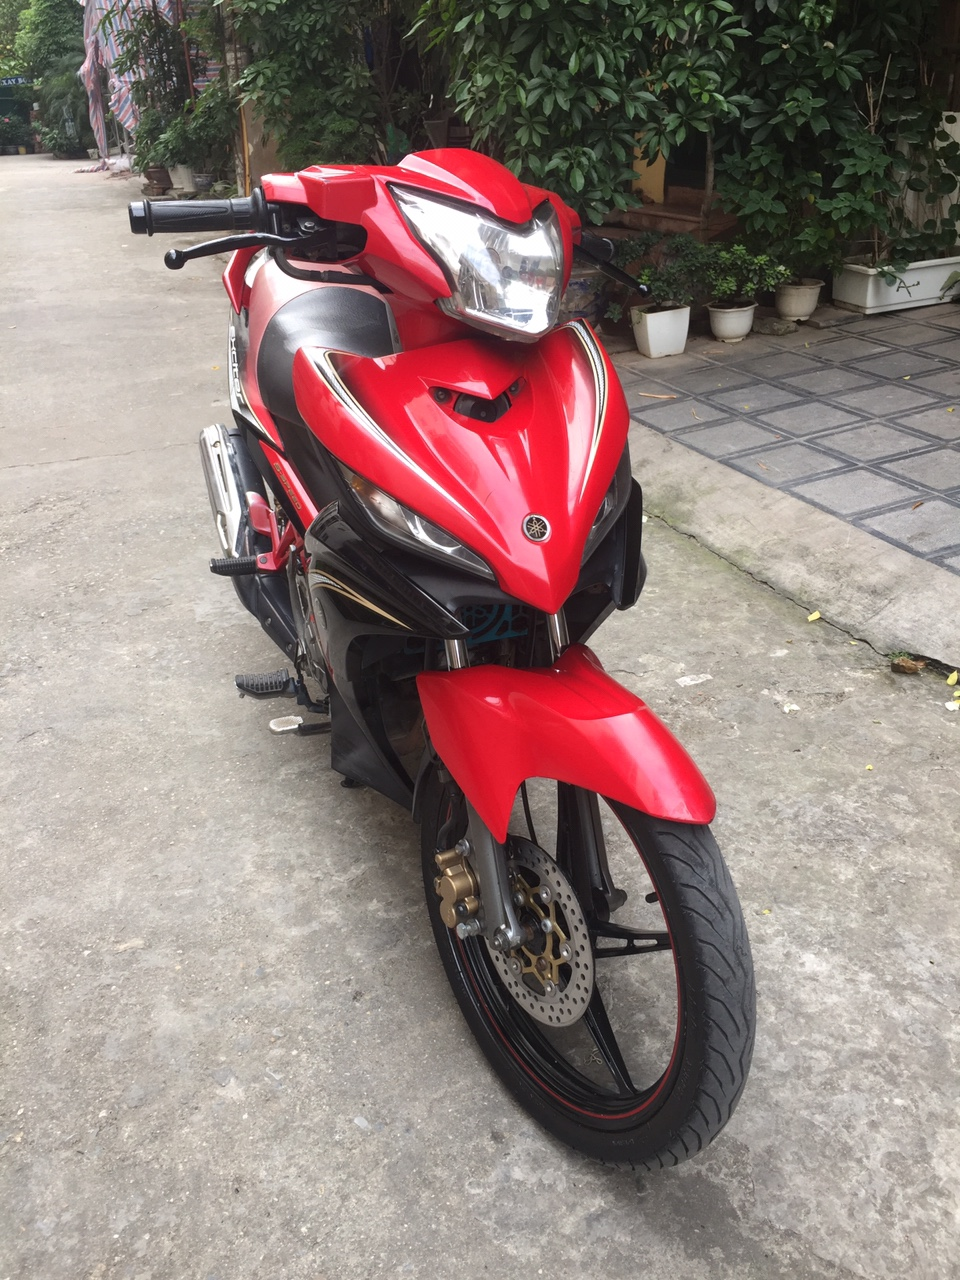 Exciter 135RC con tay 2012 do chinh chu may chat luong 22tr800 - 5